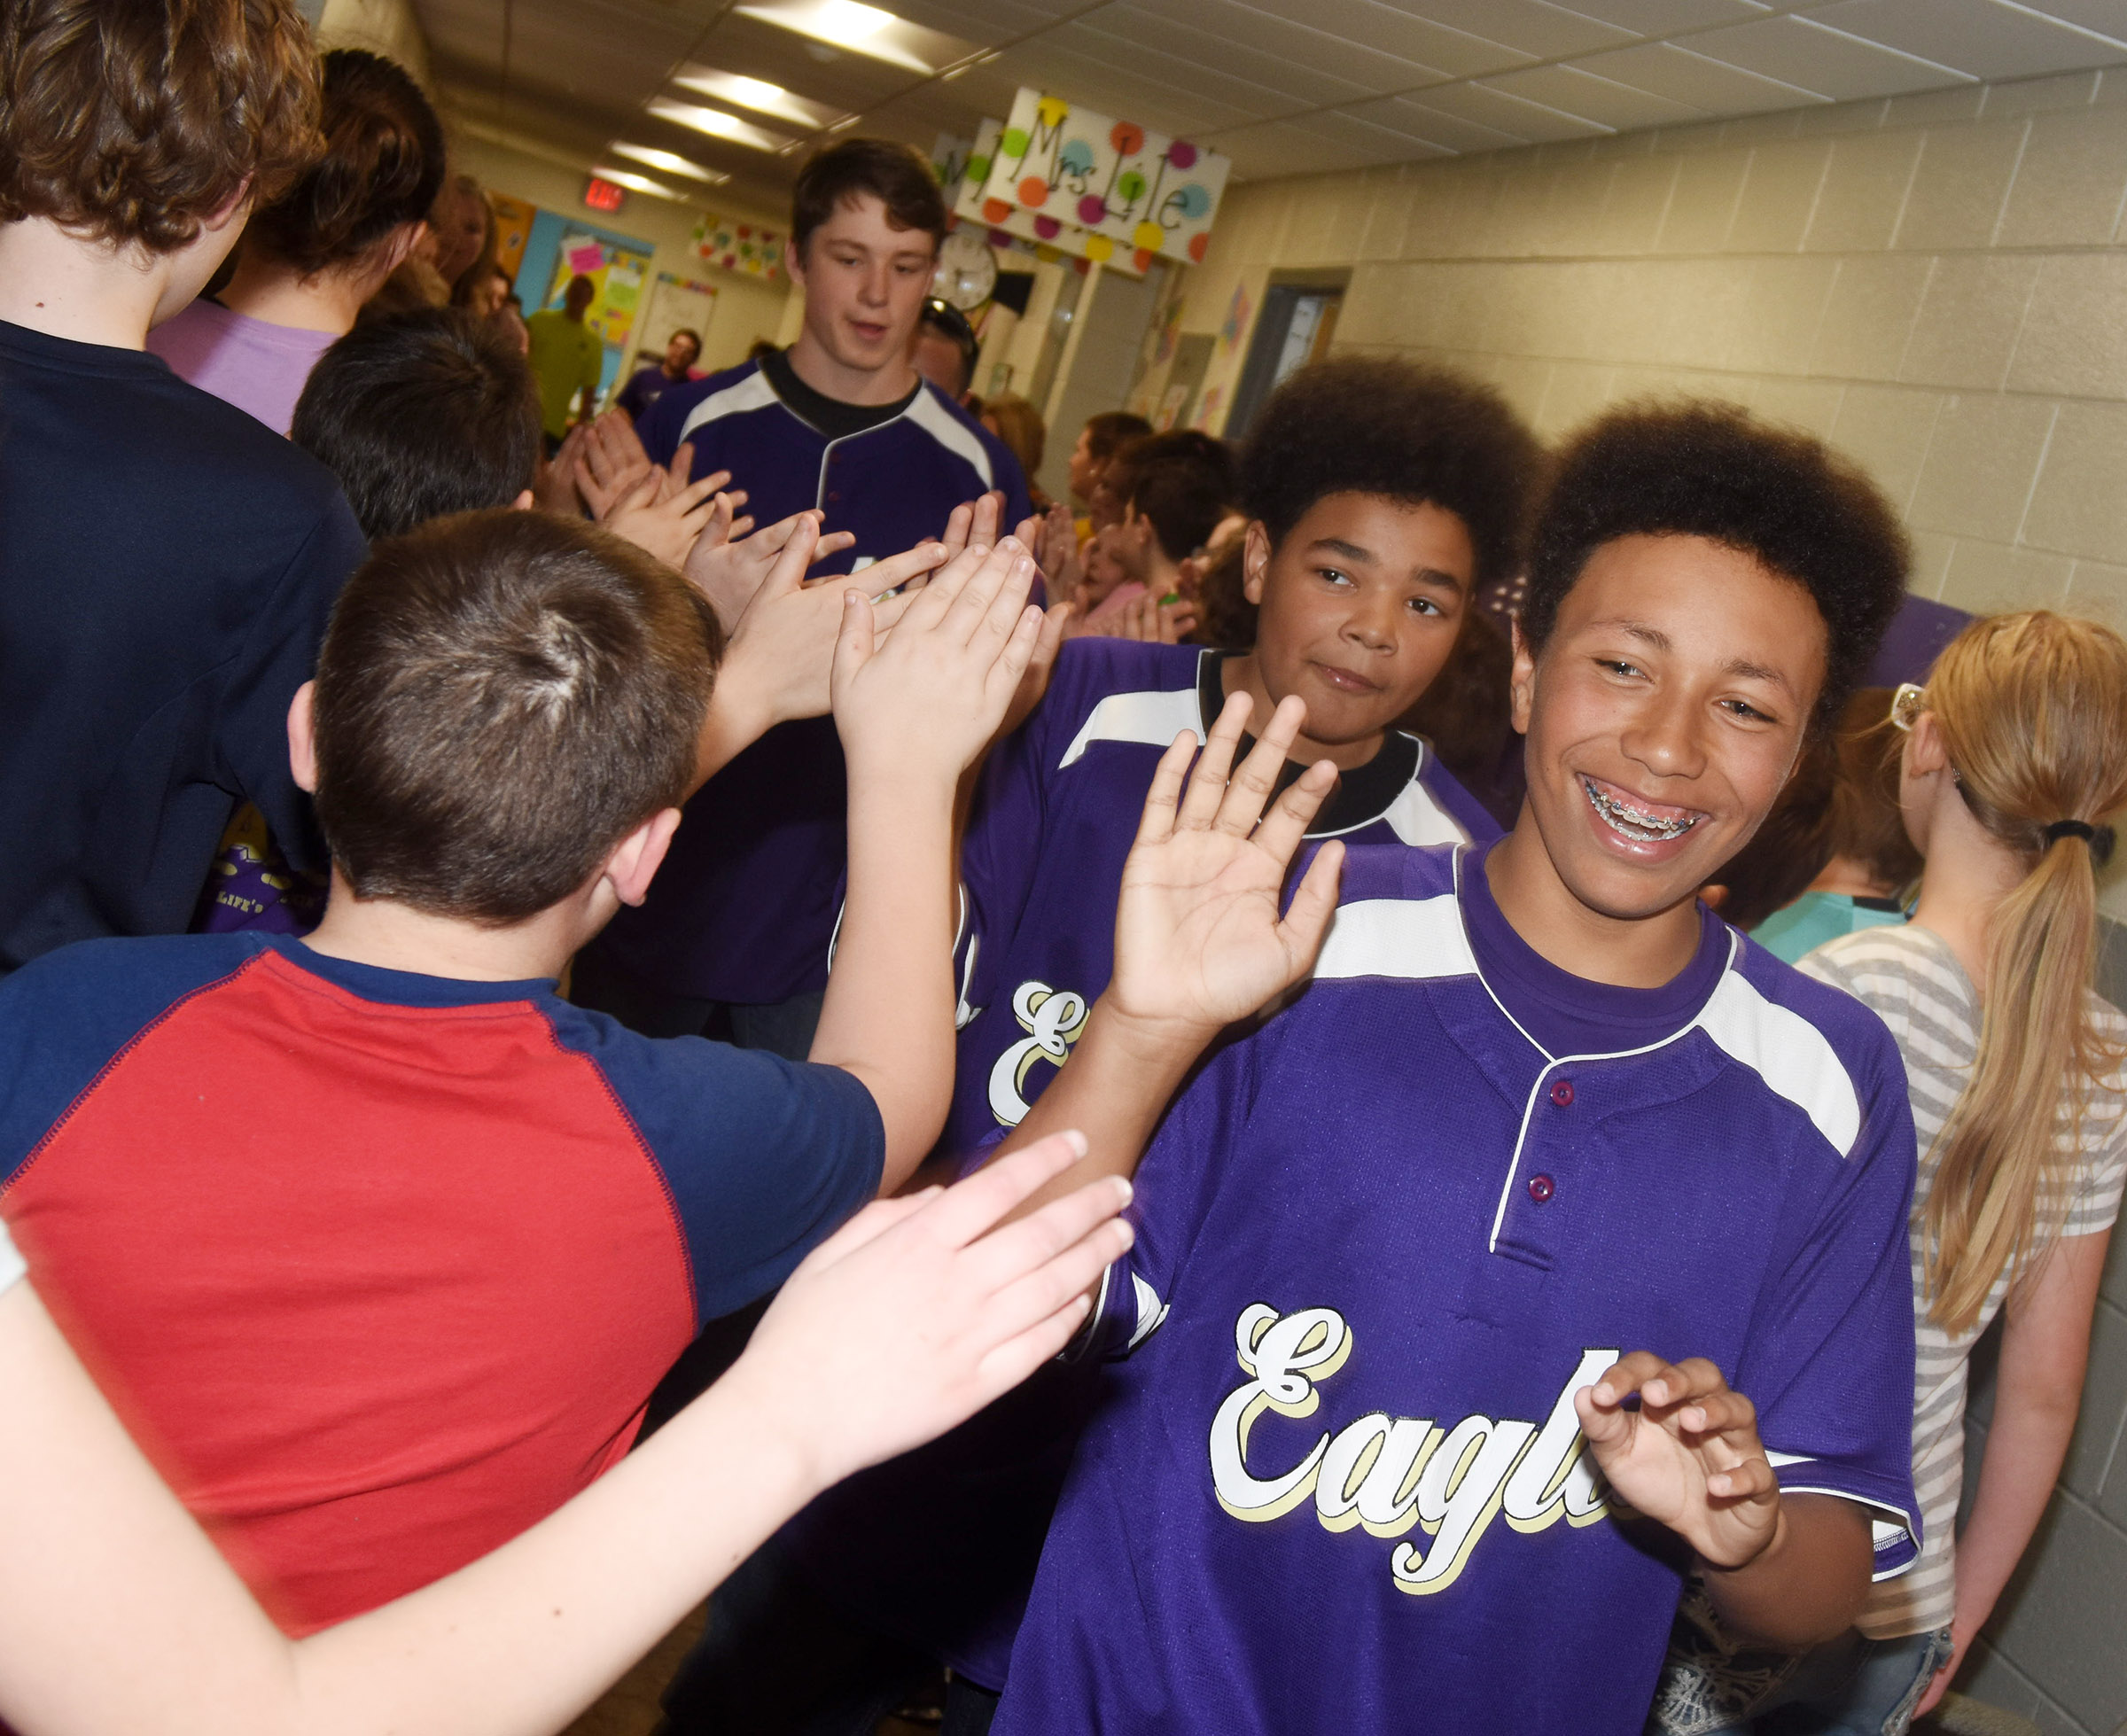 CHS freshman Jastyn Shively and his teammates high-five CES students.